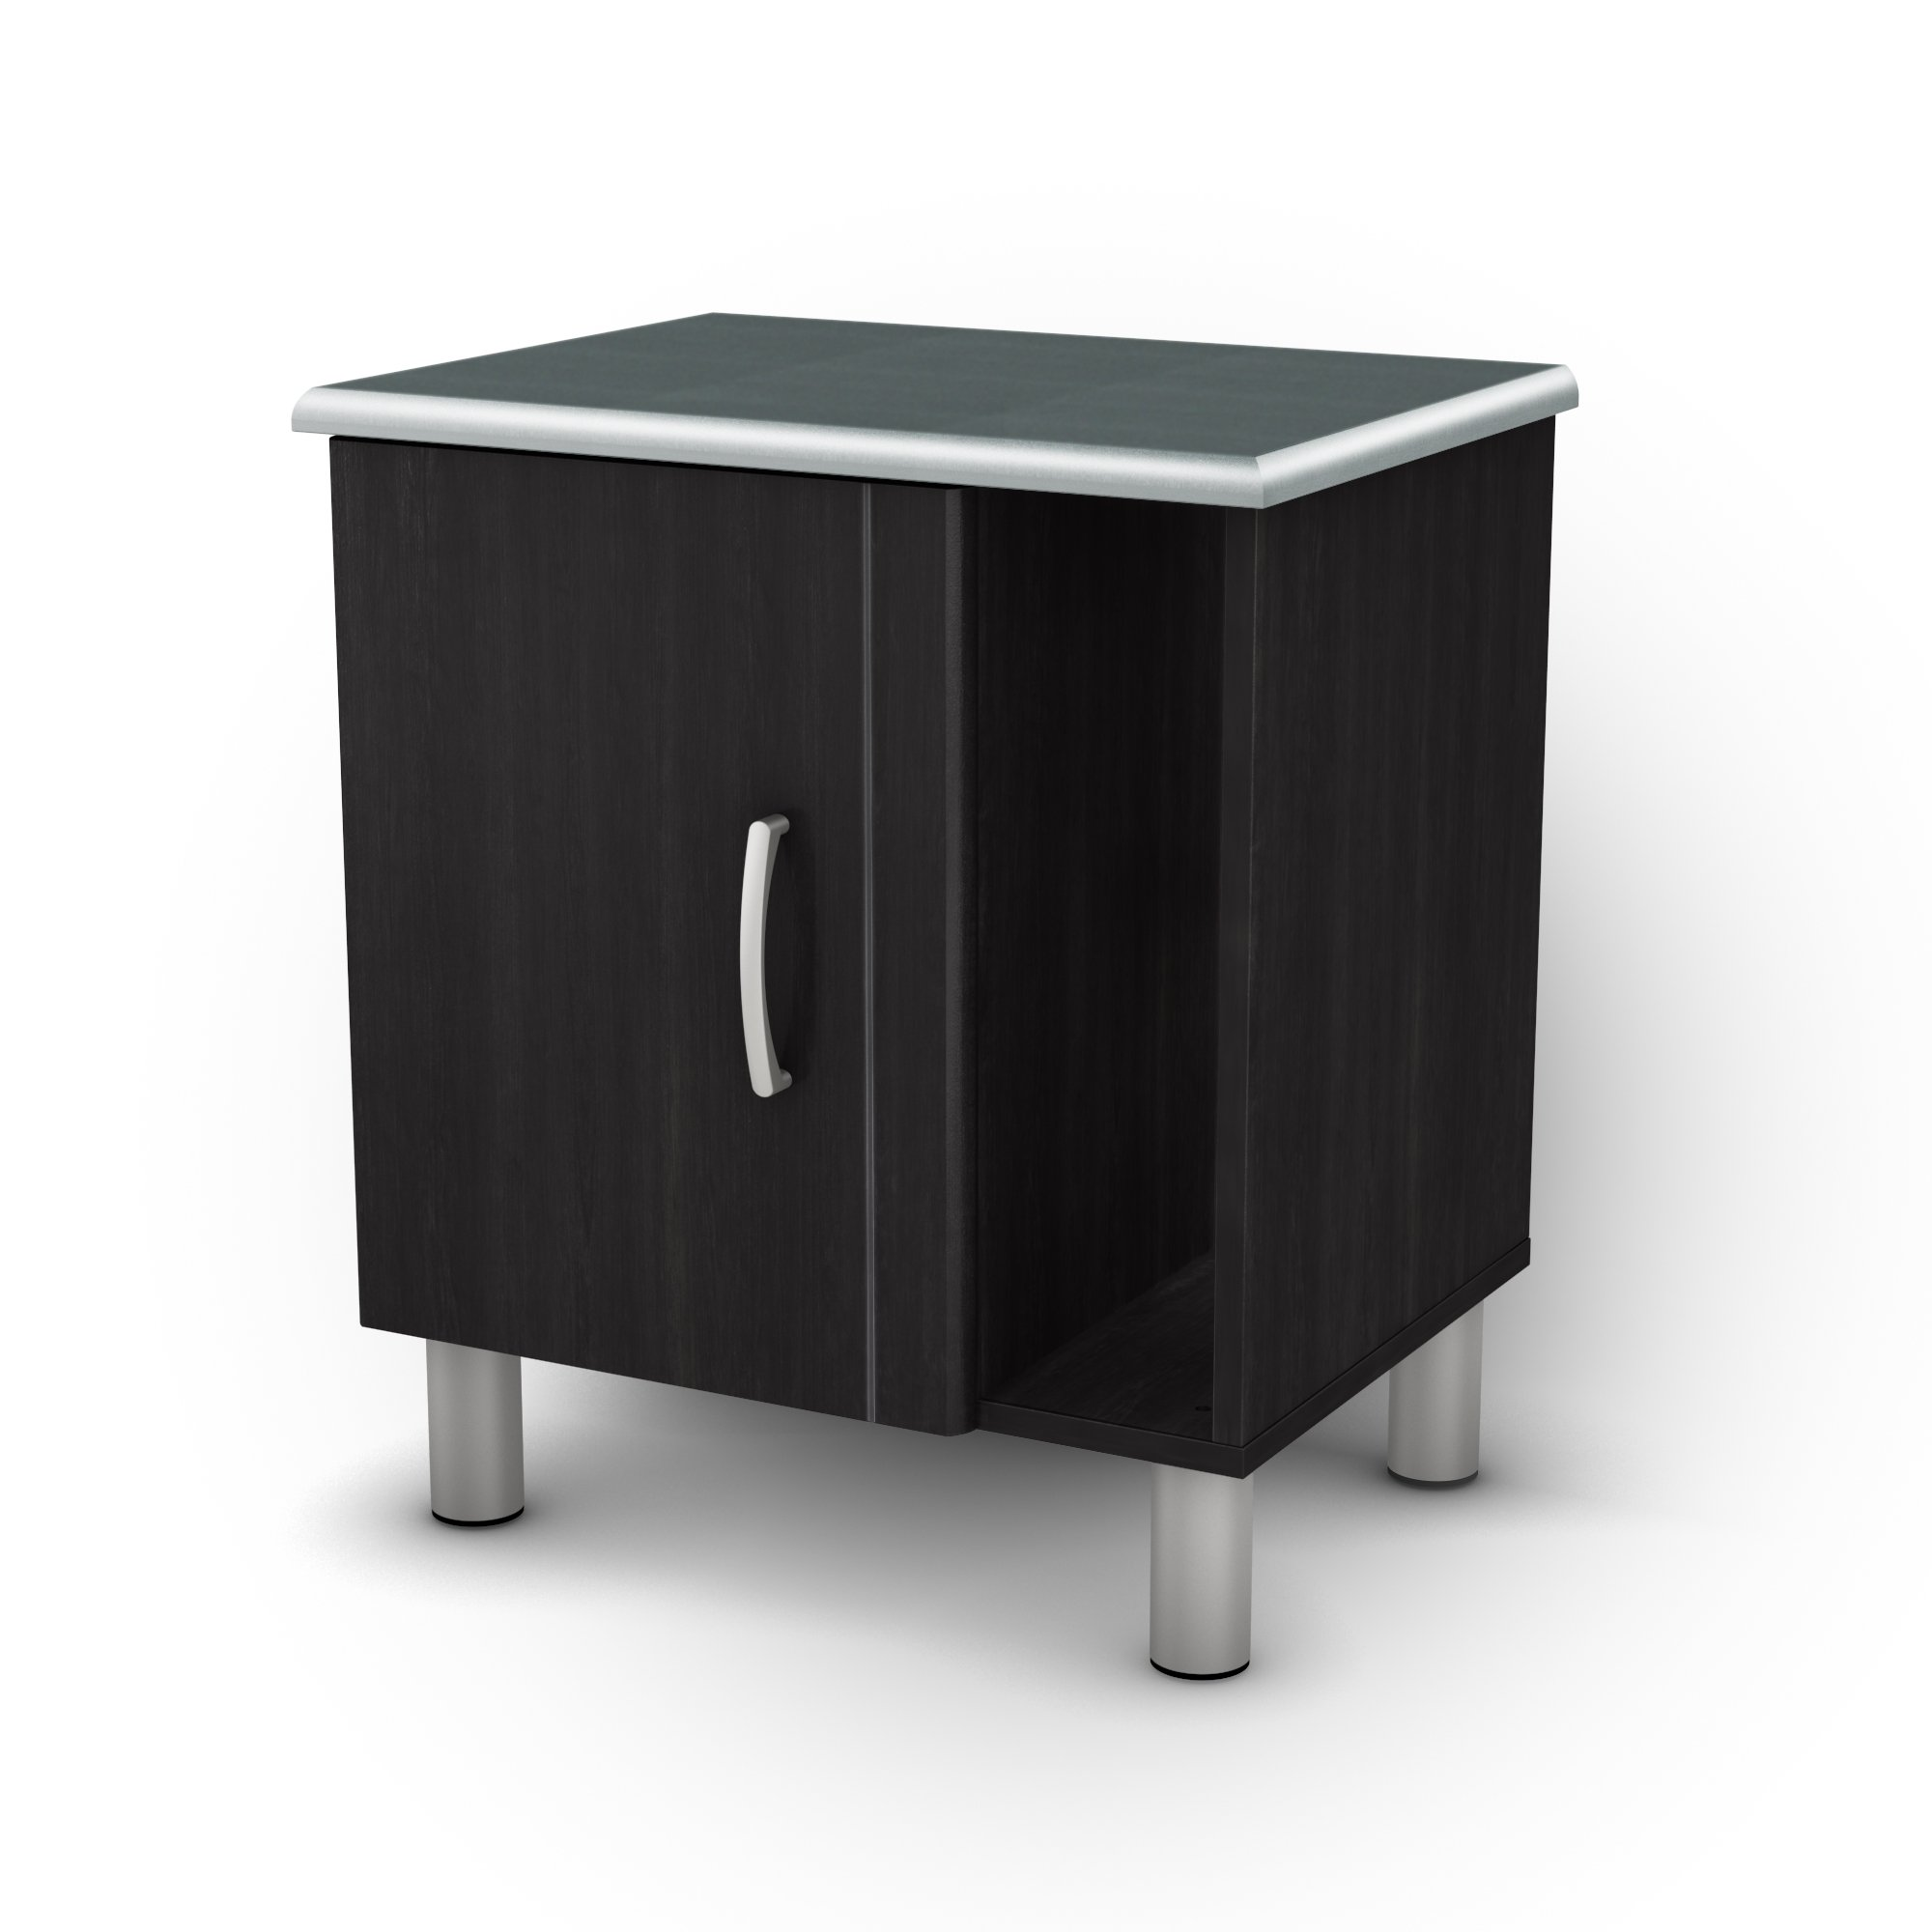 South Shore Cosmos 2-Shelf Nightstand with Cabinet Door and Open Storage, Black Onyx and Charcoal